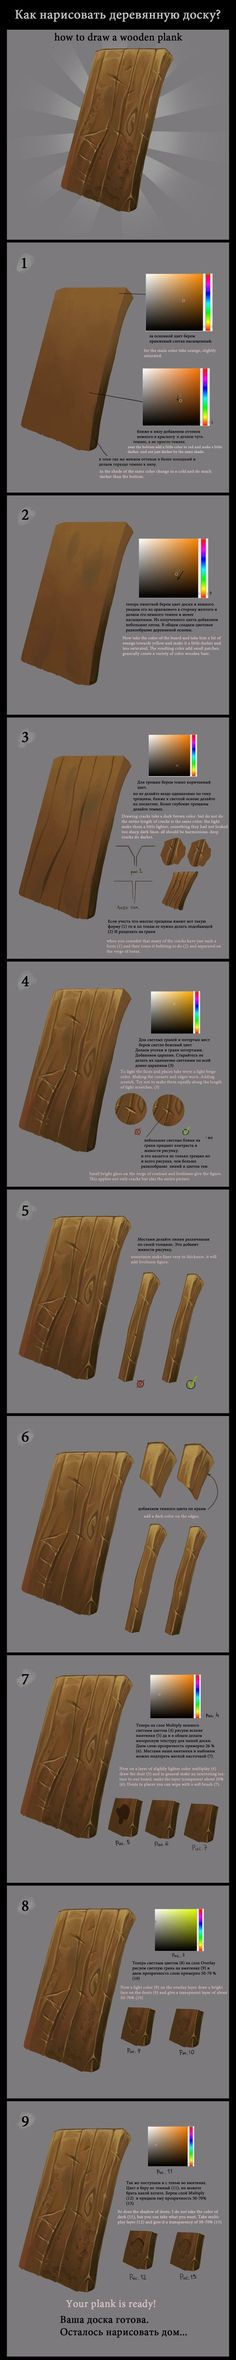 How to draw wooden plank? by Gimaldinov on deviantART